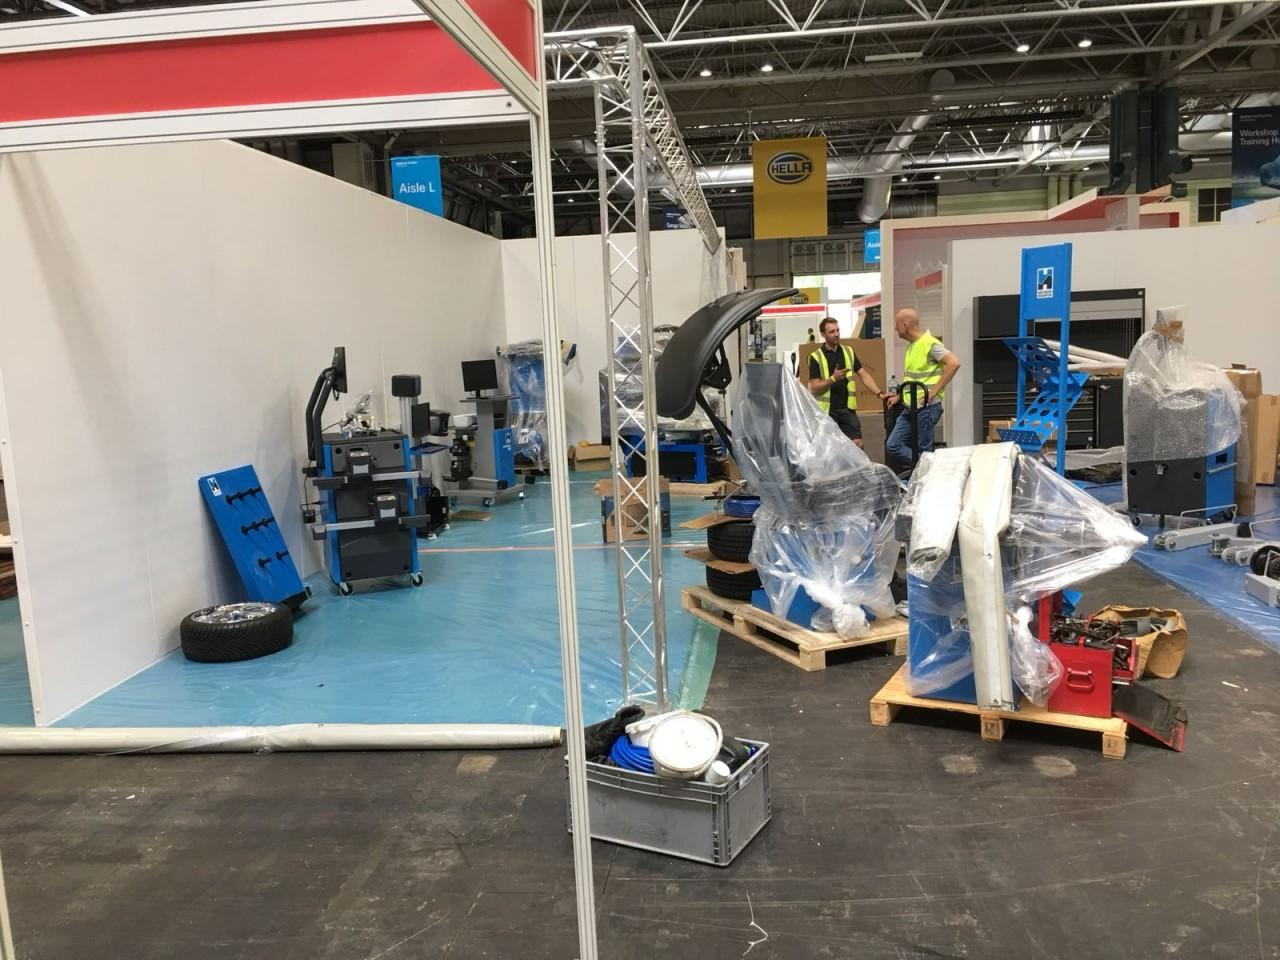 Getting all Tyre Fitting Equipment ready for Automechanika 2018